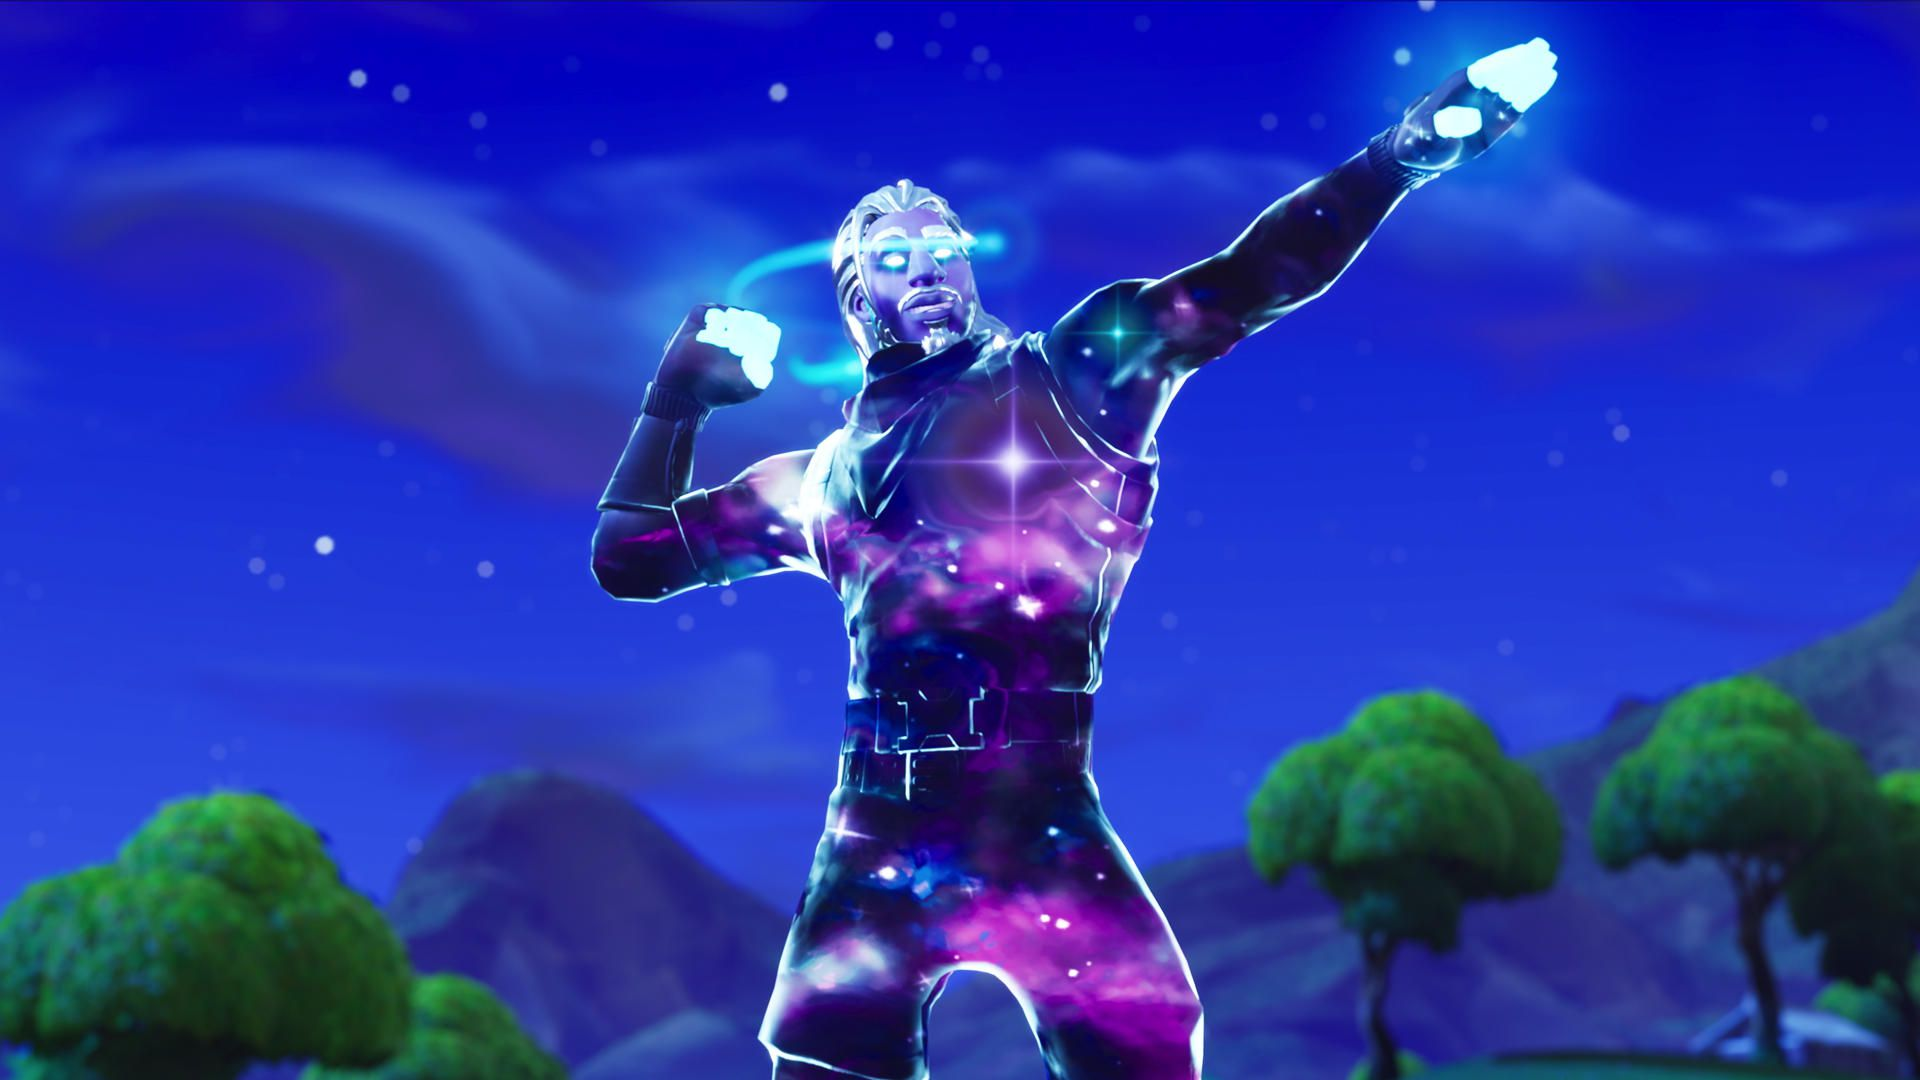 Fortnite Galaxy Skin wallpapers background theme